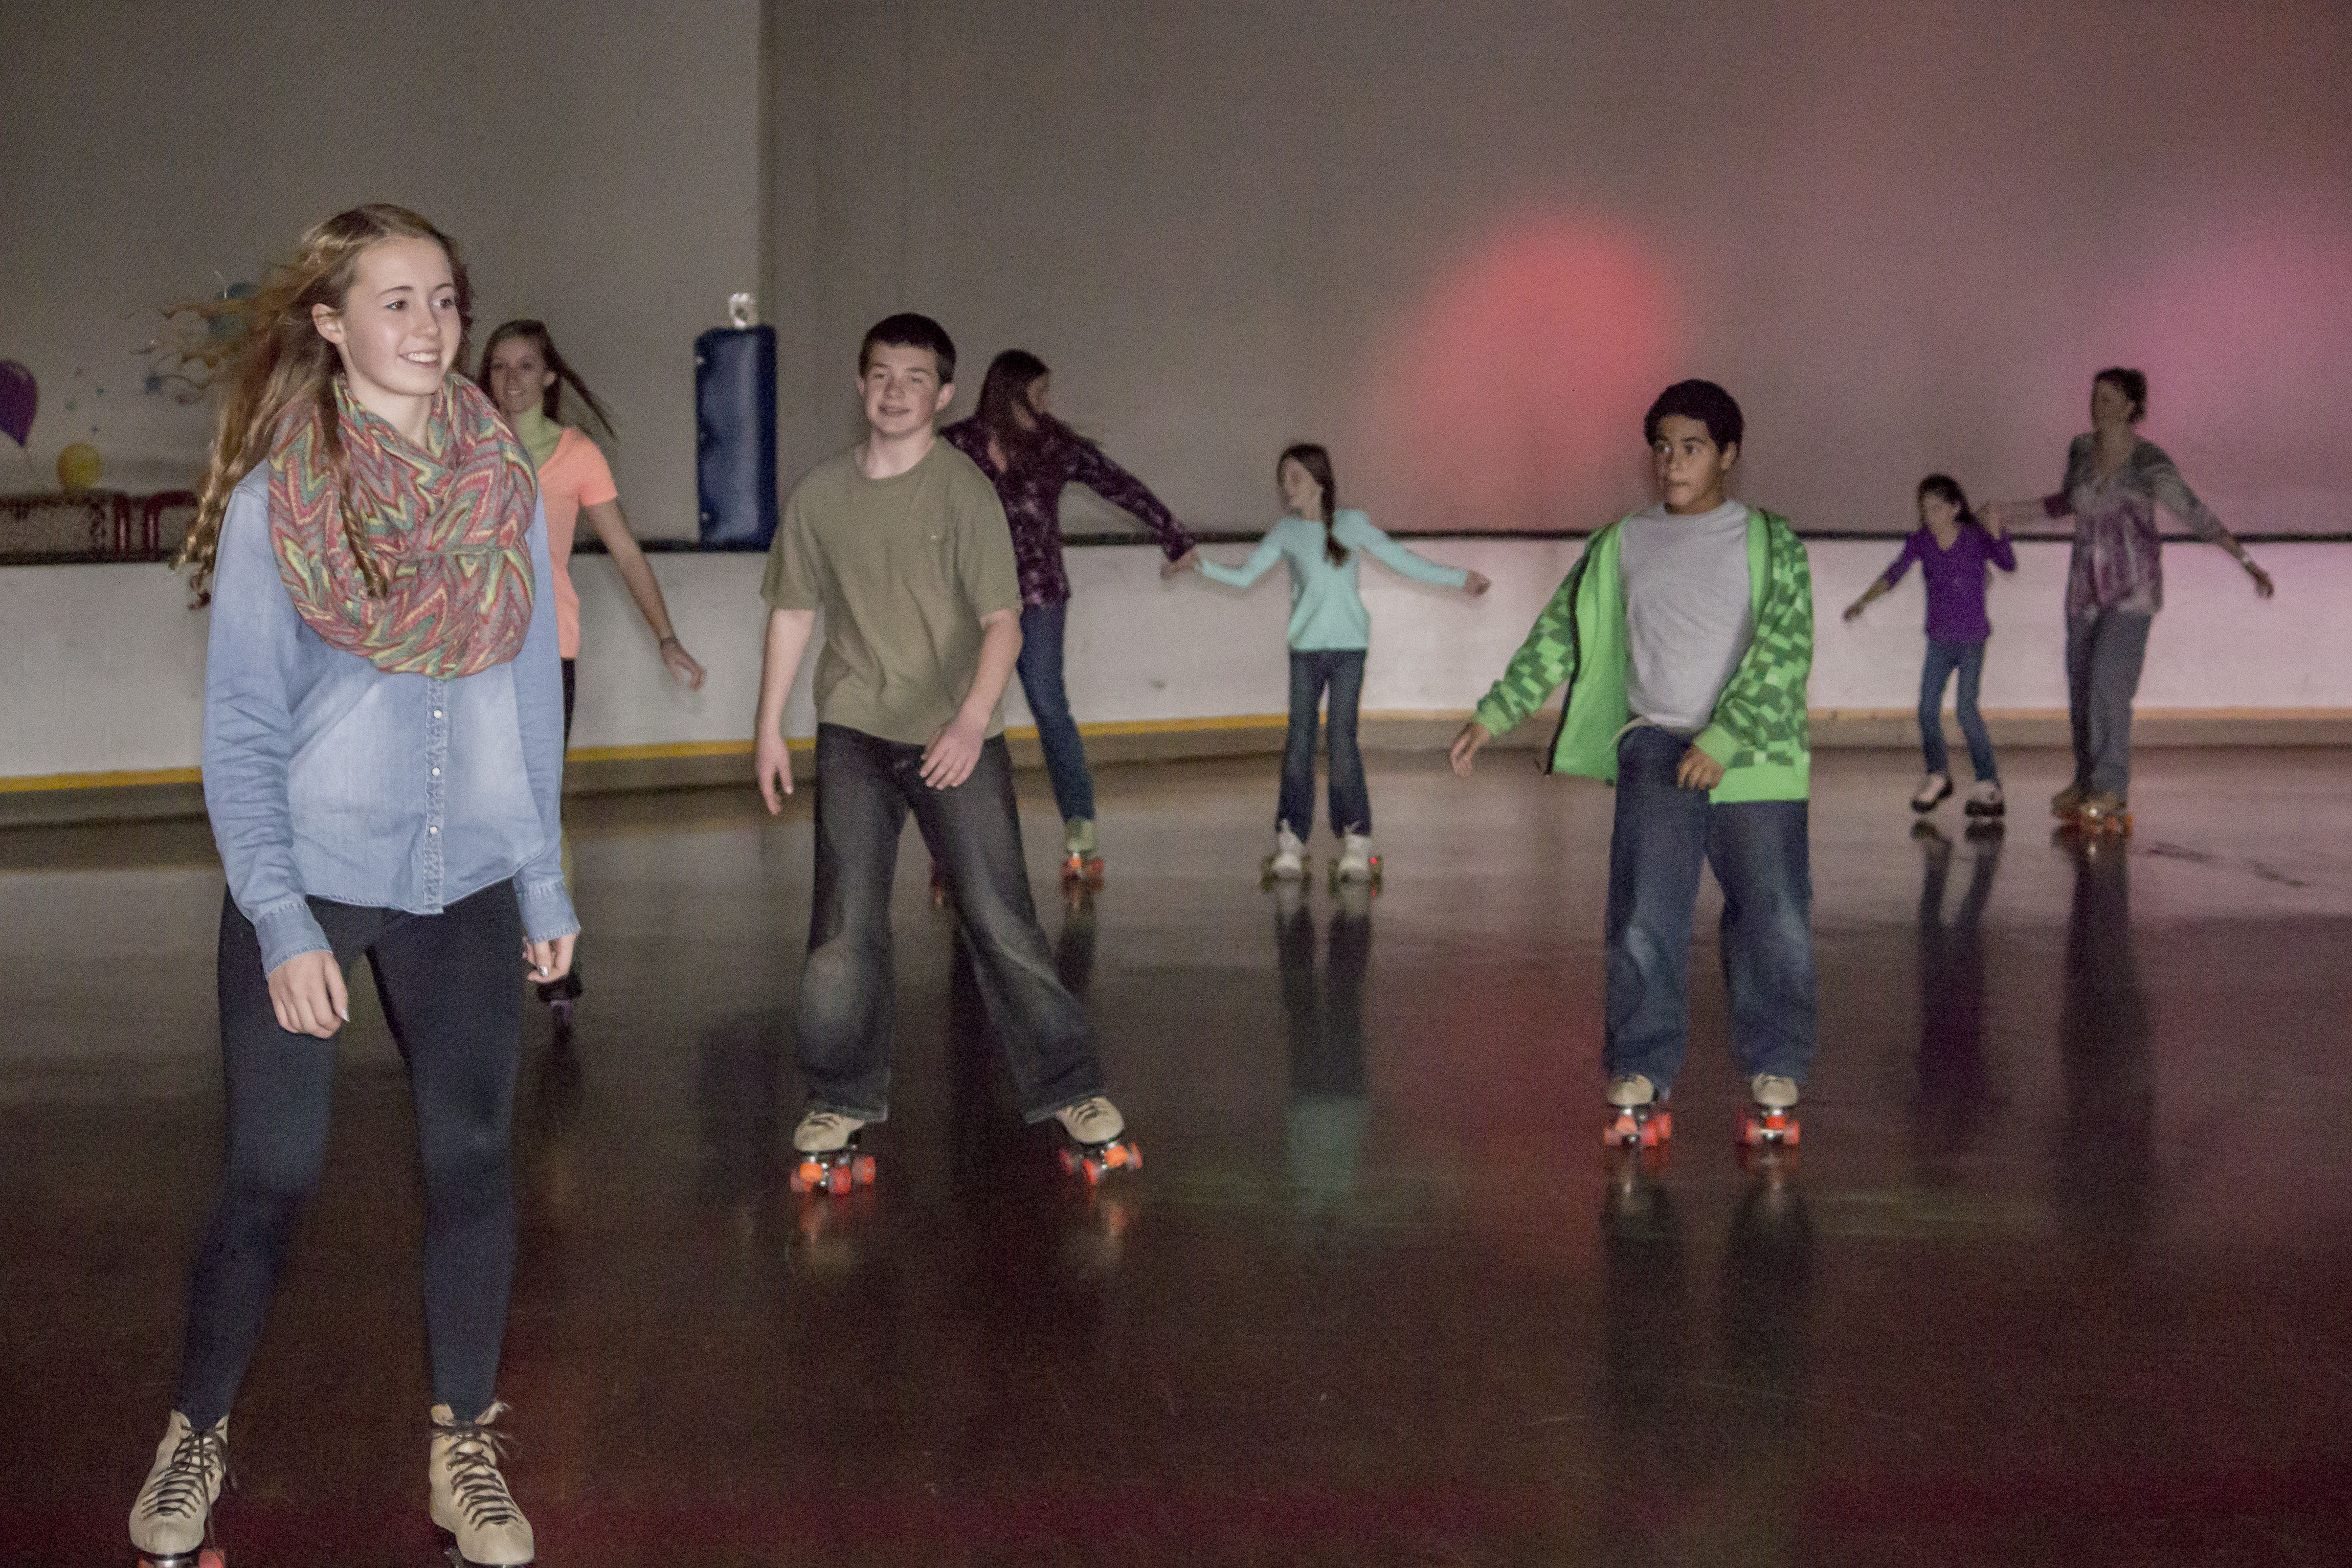 Roller skating lancaster pa - Monday Friday Pay Only 6 00 Per Person And Skate All Day And Night